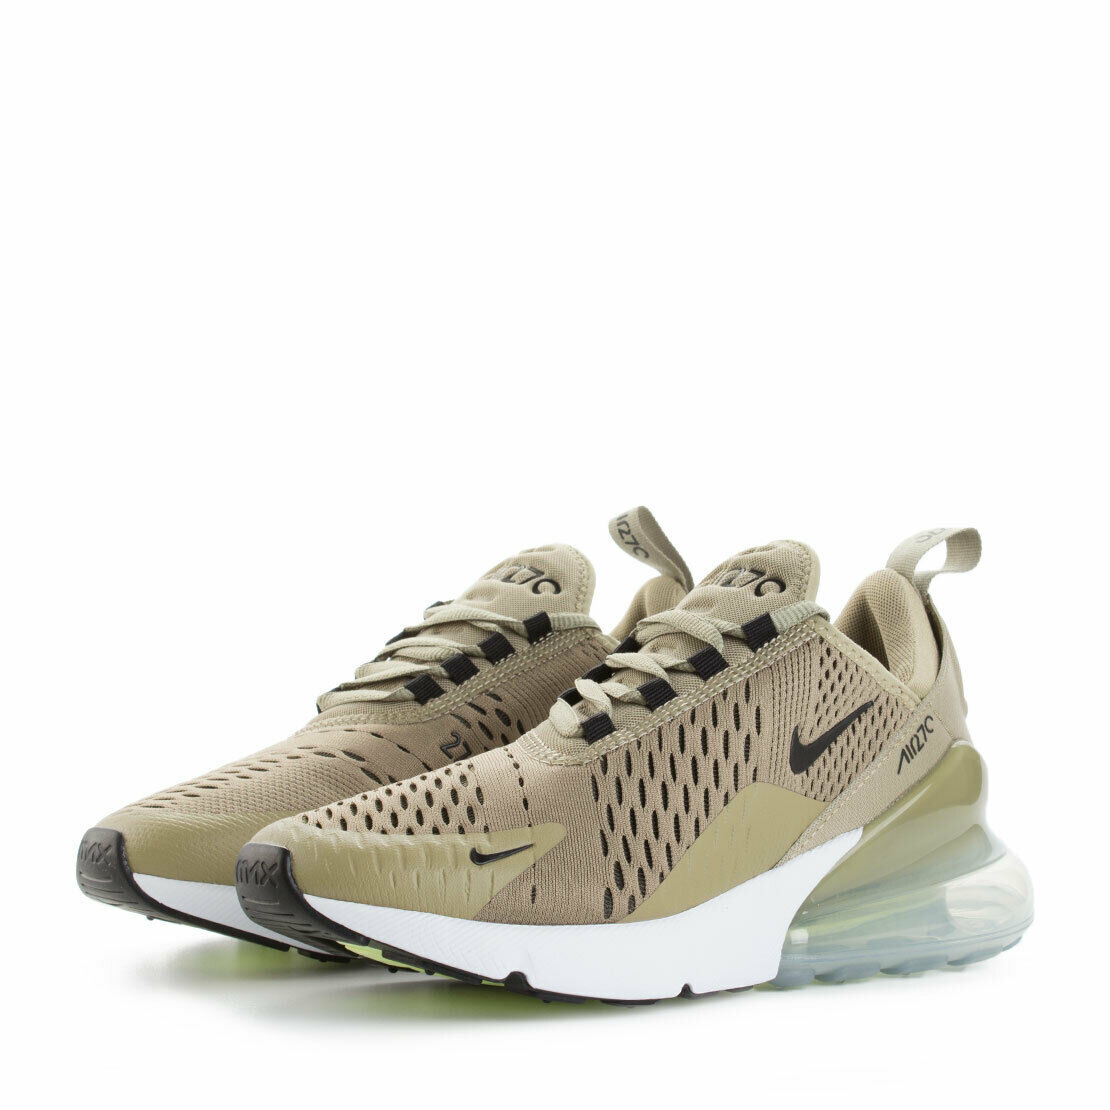 new style 4f025 b540c Details about WOMENS NIKE AIR MAX 270 - UK SIZE 3.5 - GREEN/BLACK/WHITE  (AH6789-200)